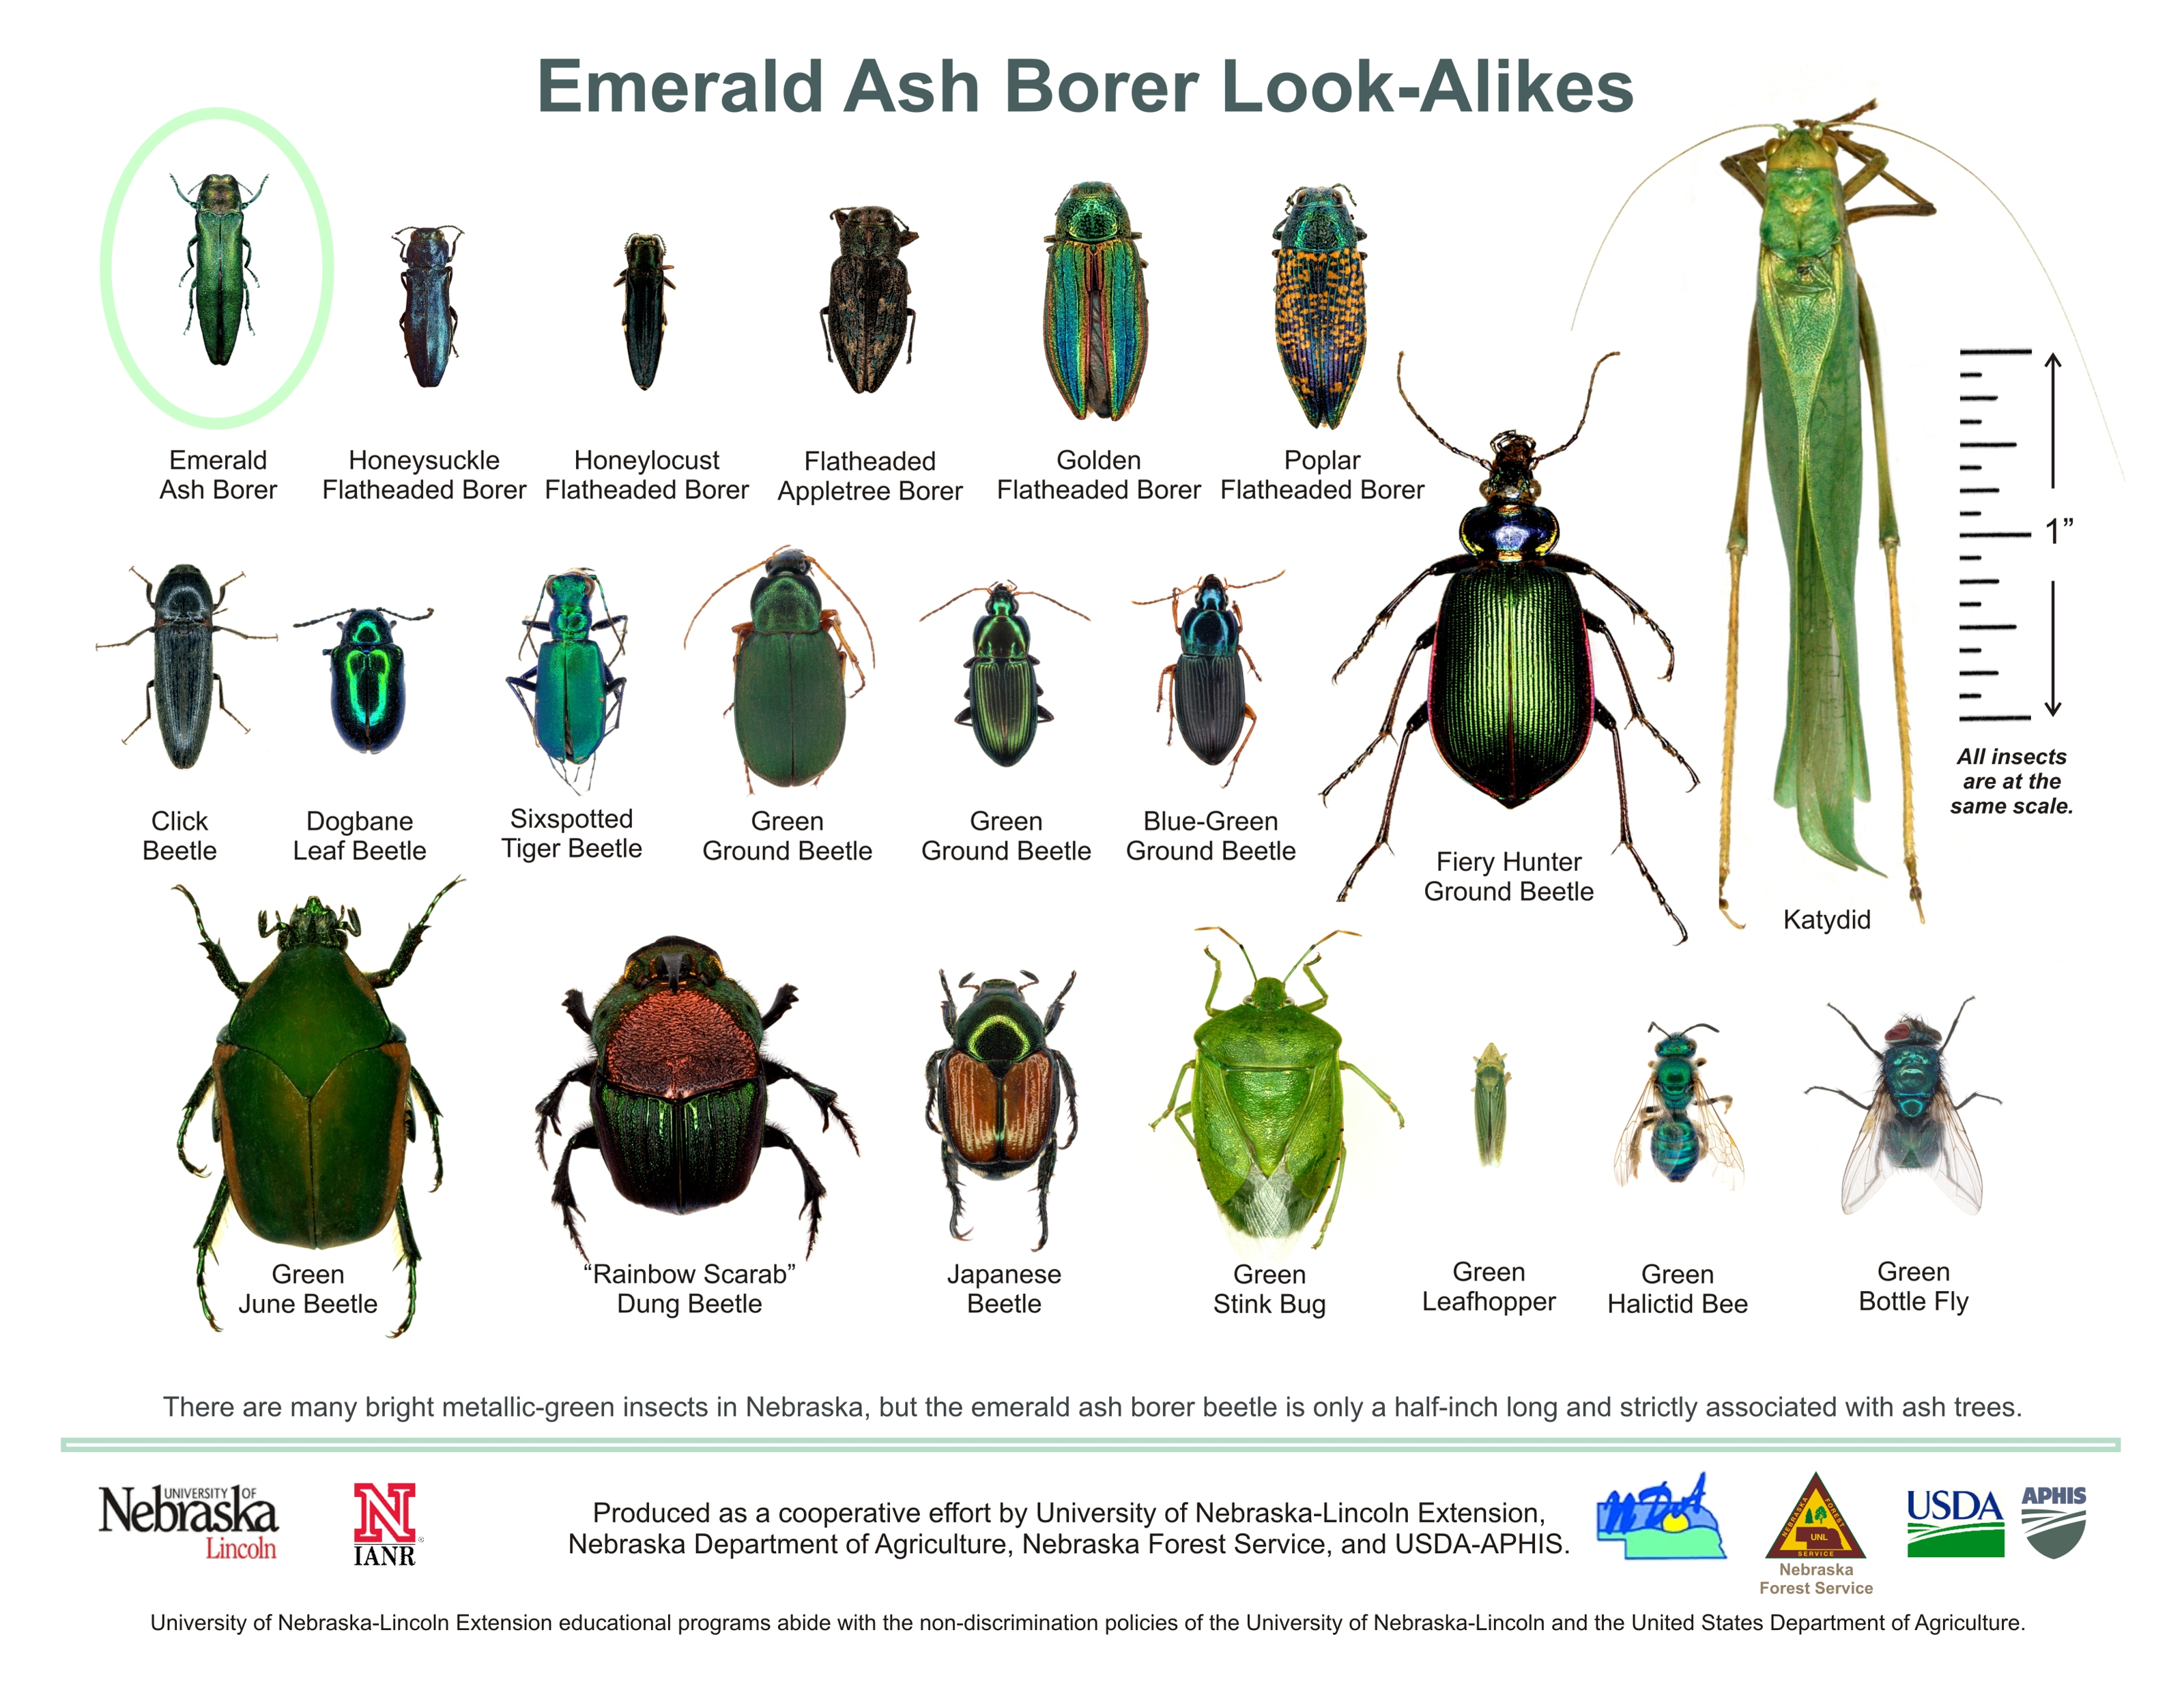 How do I know if I've found emerald ash borer? : Forest ...